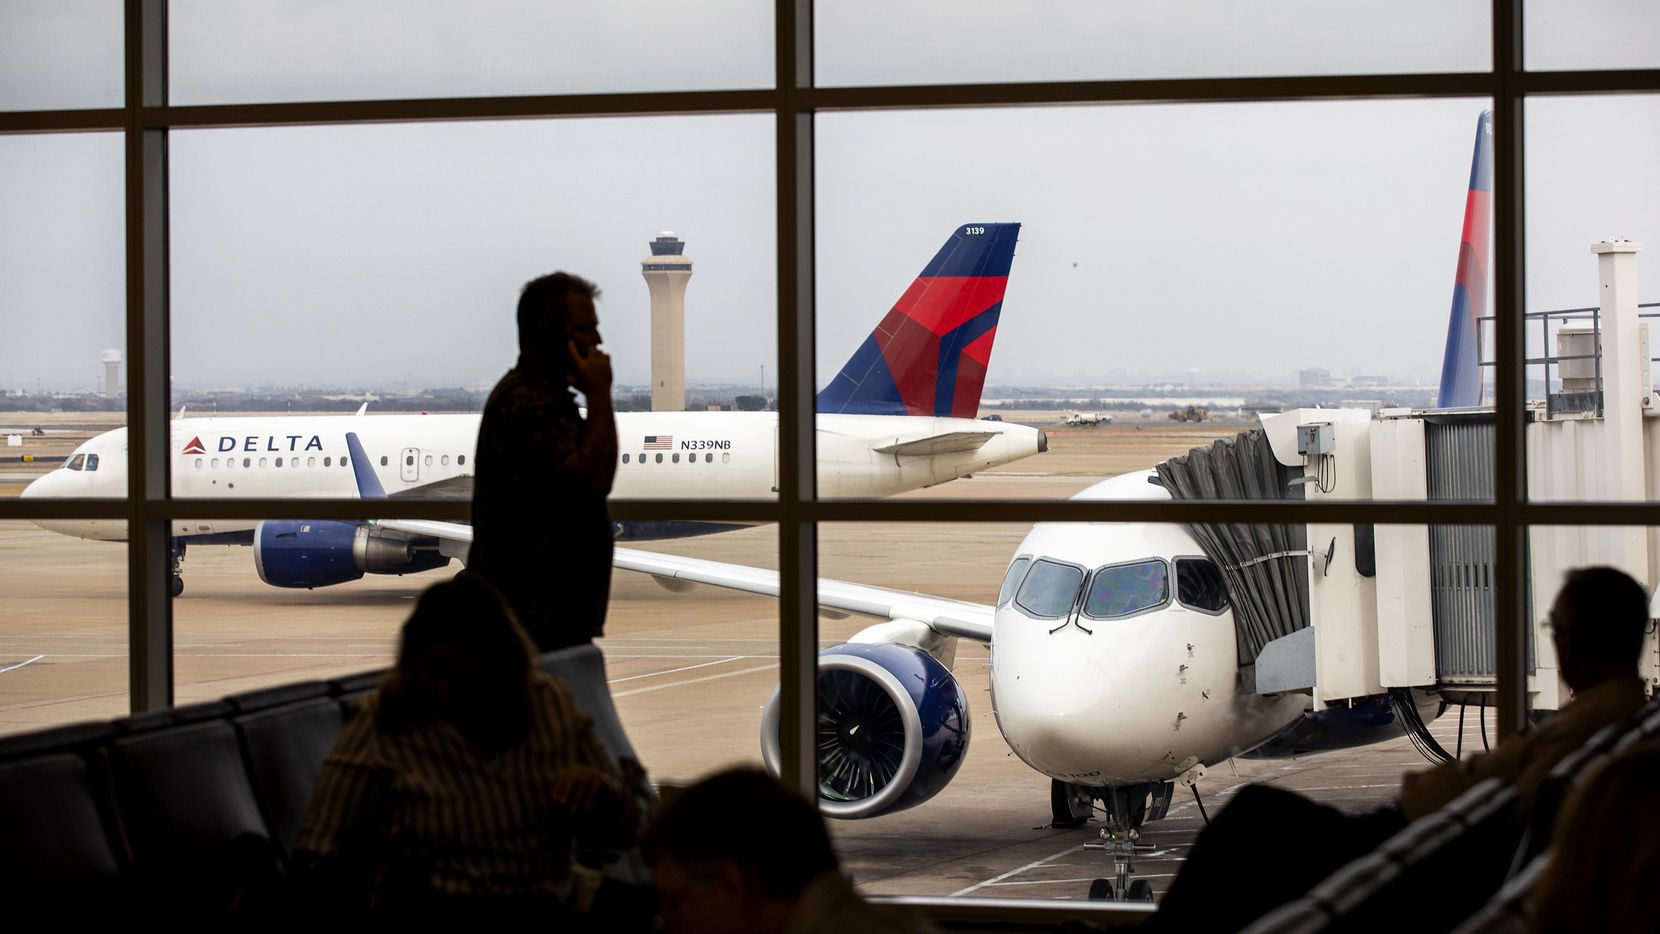 Delta's new Airbus A220-100 airplane sits parked at gate E15 of Terminal E at DFW Airport (right) as Delta Airbus A319 pushes back from the adjacent gate on Wednesday, Feb. 6, 2019. Beginning Thursday, Delta will put the twin-engine, narrow-body plane into service, with a 7:05 a.m. departure from DFW to New York's LaGuardia Airport. (Smiley N. Pool/The Dallas Morning News)